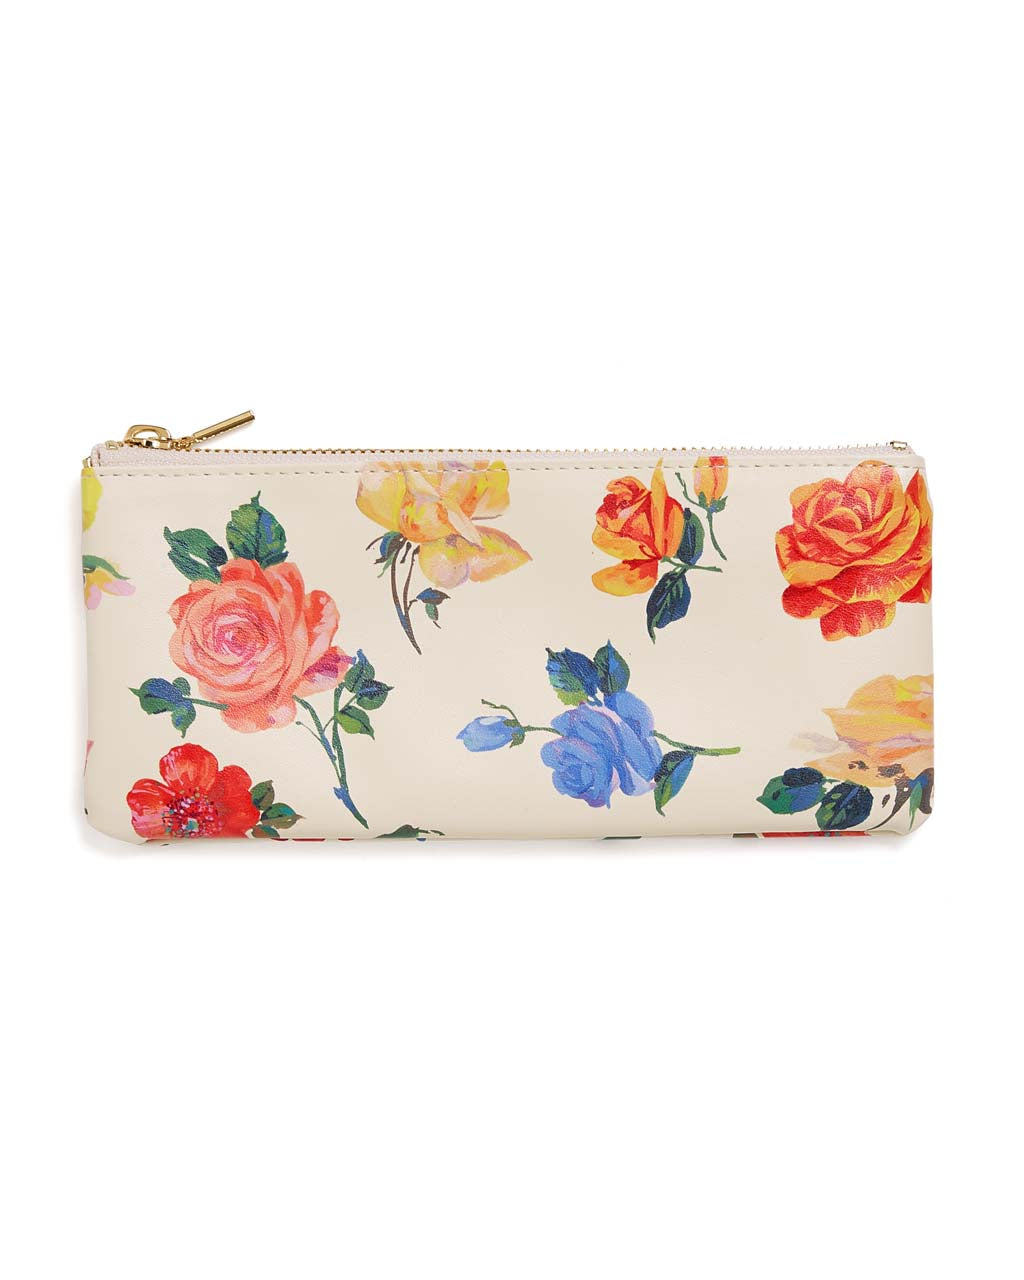 This Get It Together Pencil Pouch comes in a colorful floral pattern designed by Helen Dealtry.